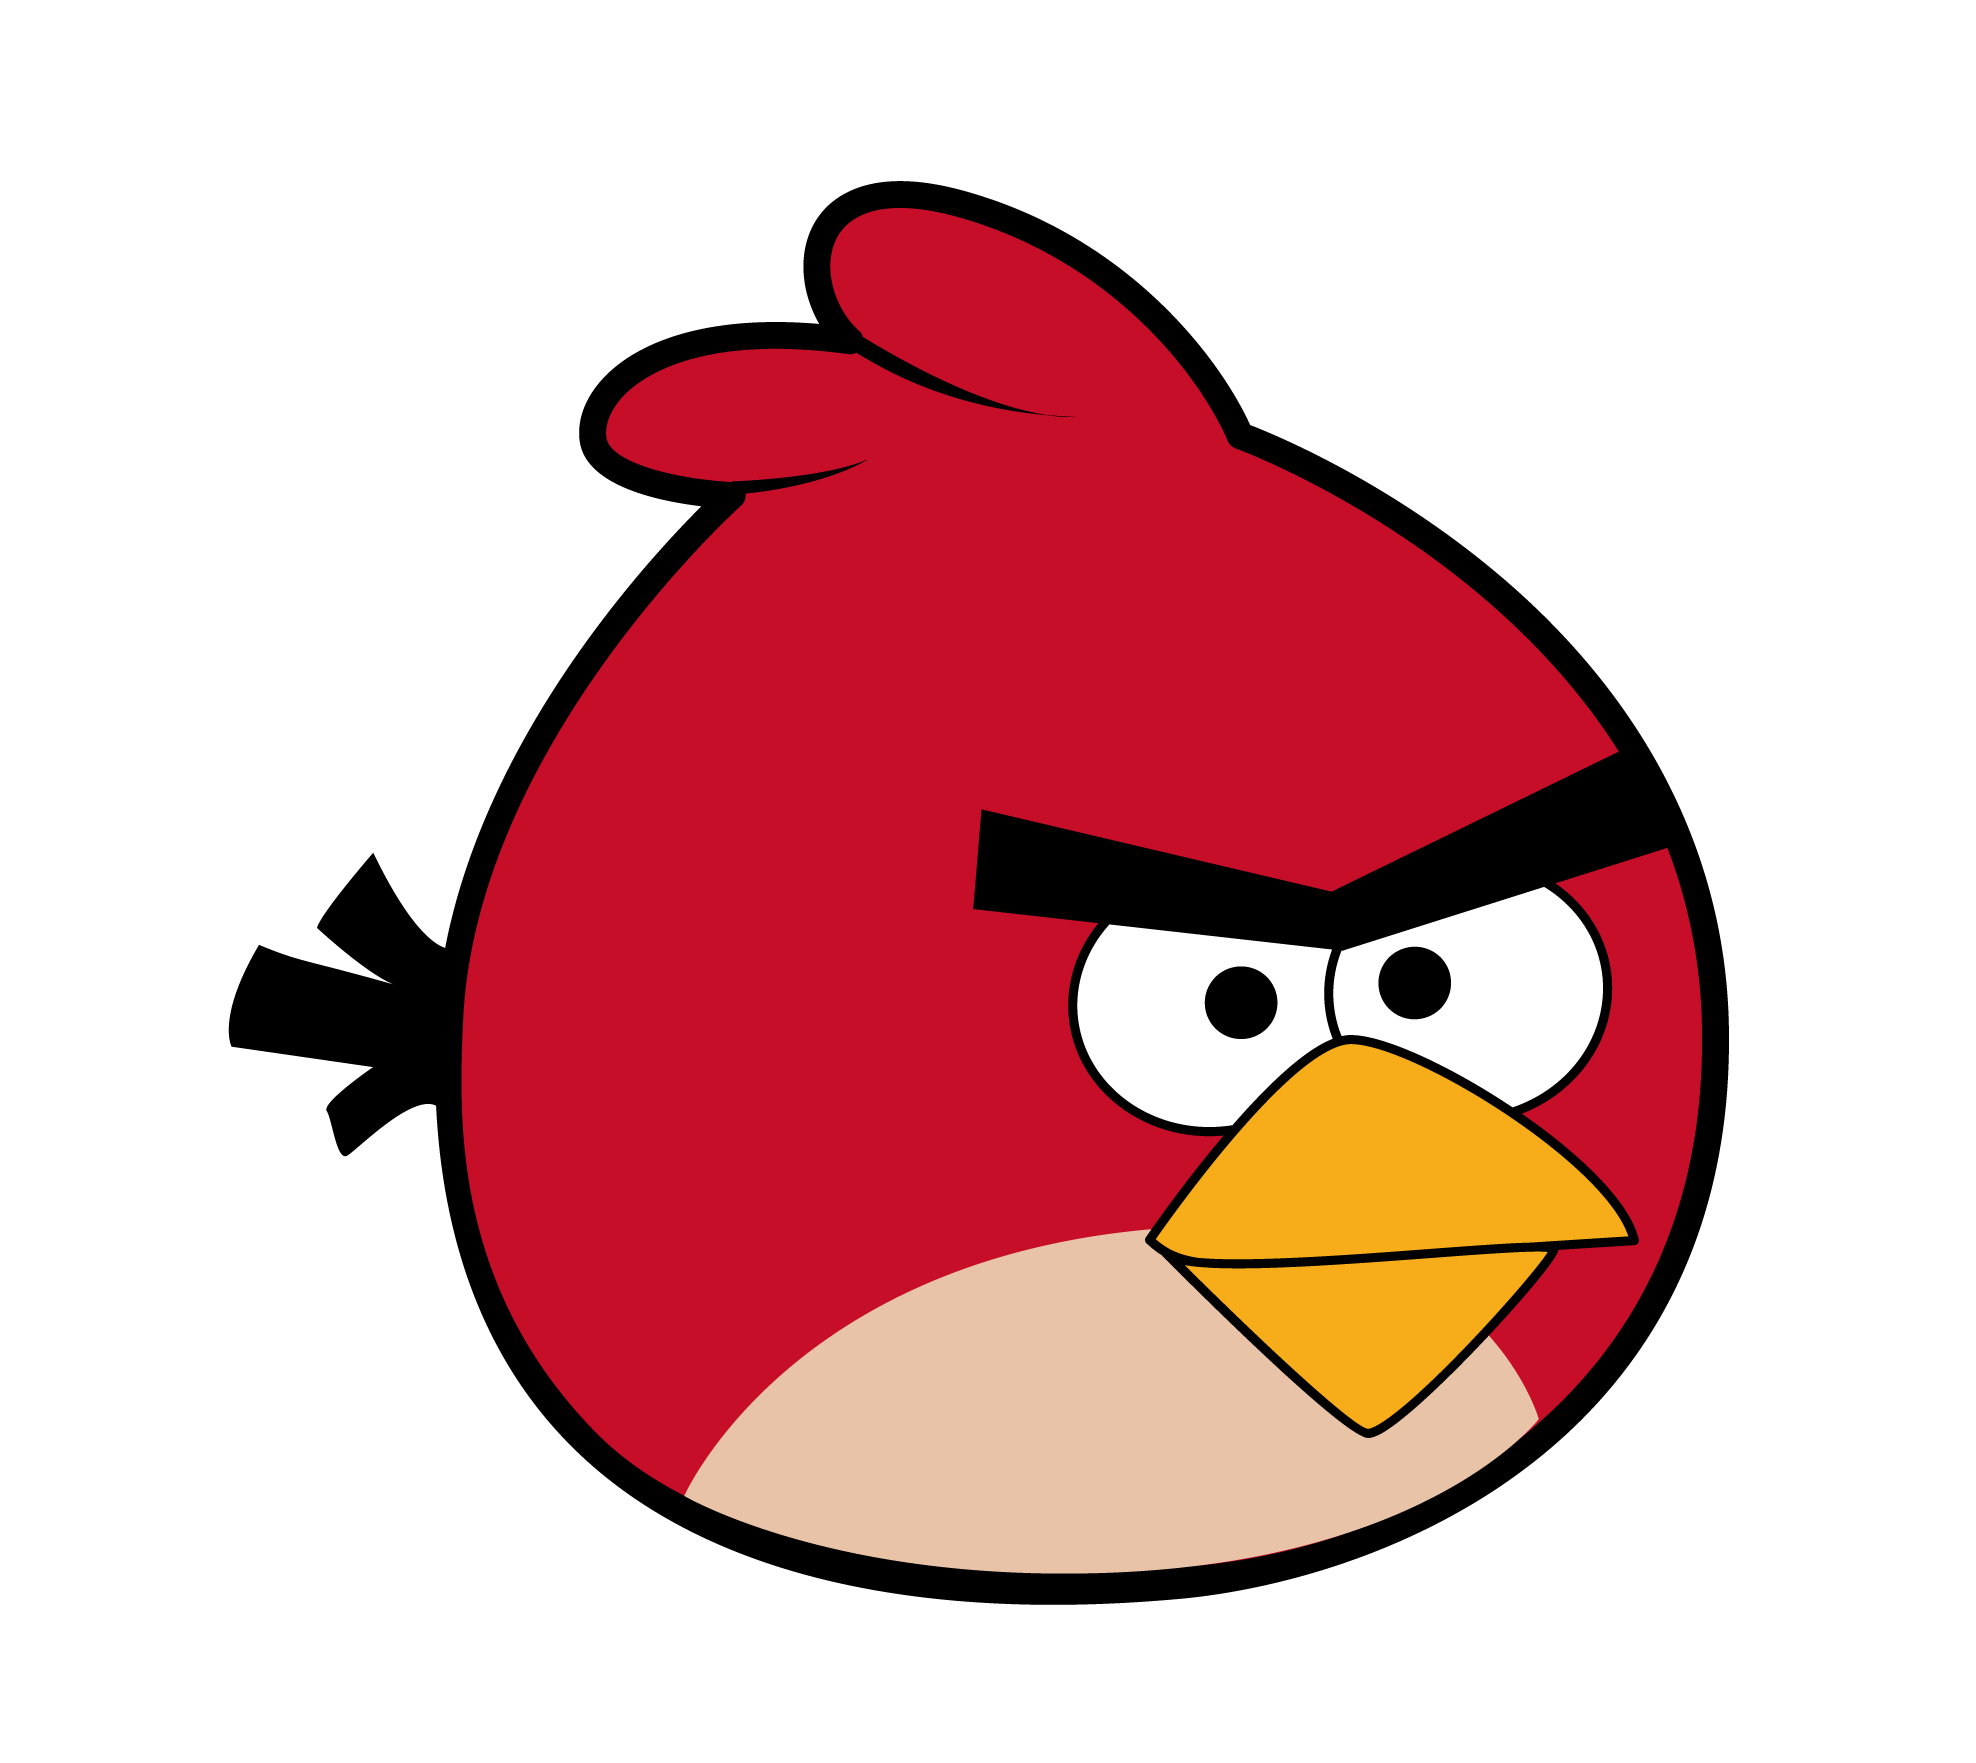 download its about All Things Angry Birds Free Too pic